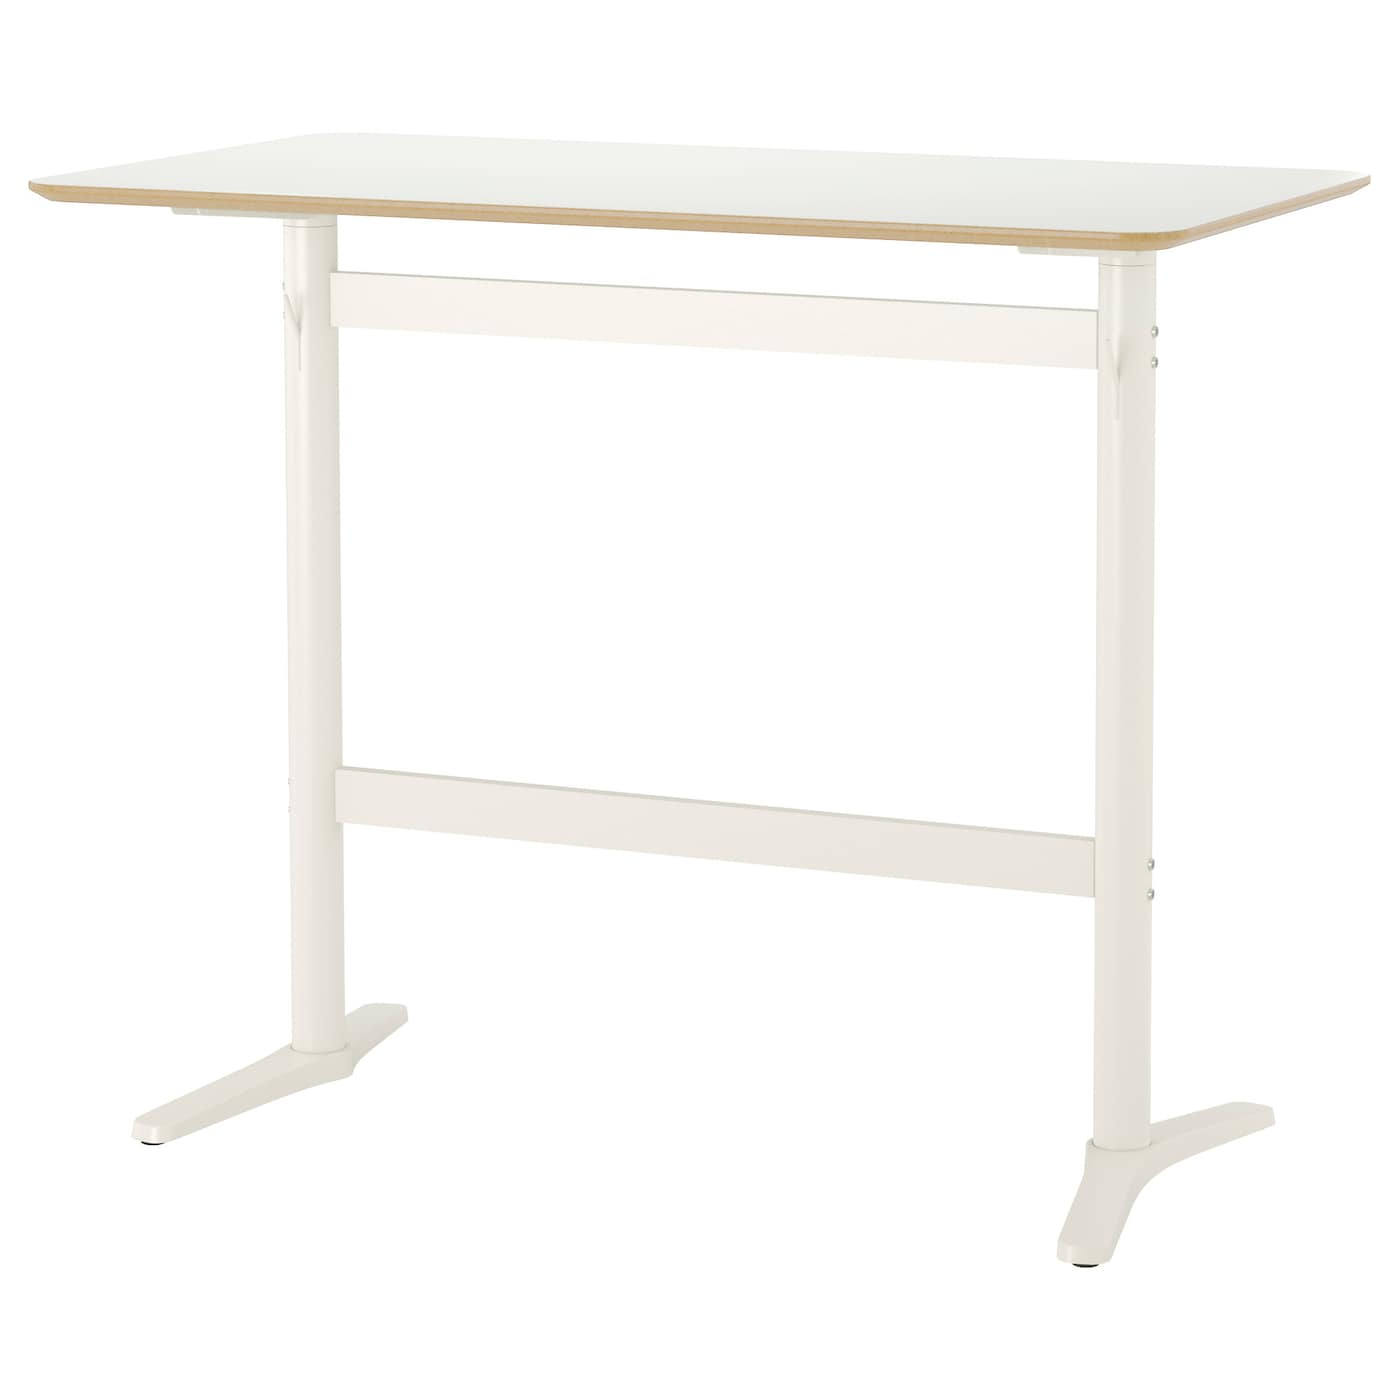 Tables Hautes De Bar Tables Hautes Mange Debout Ikea